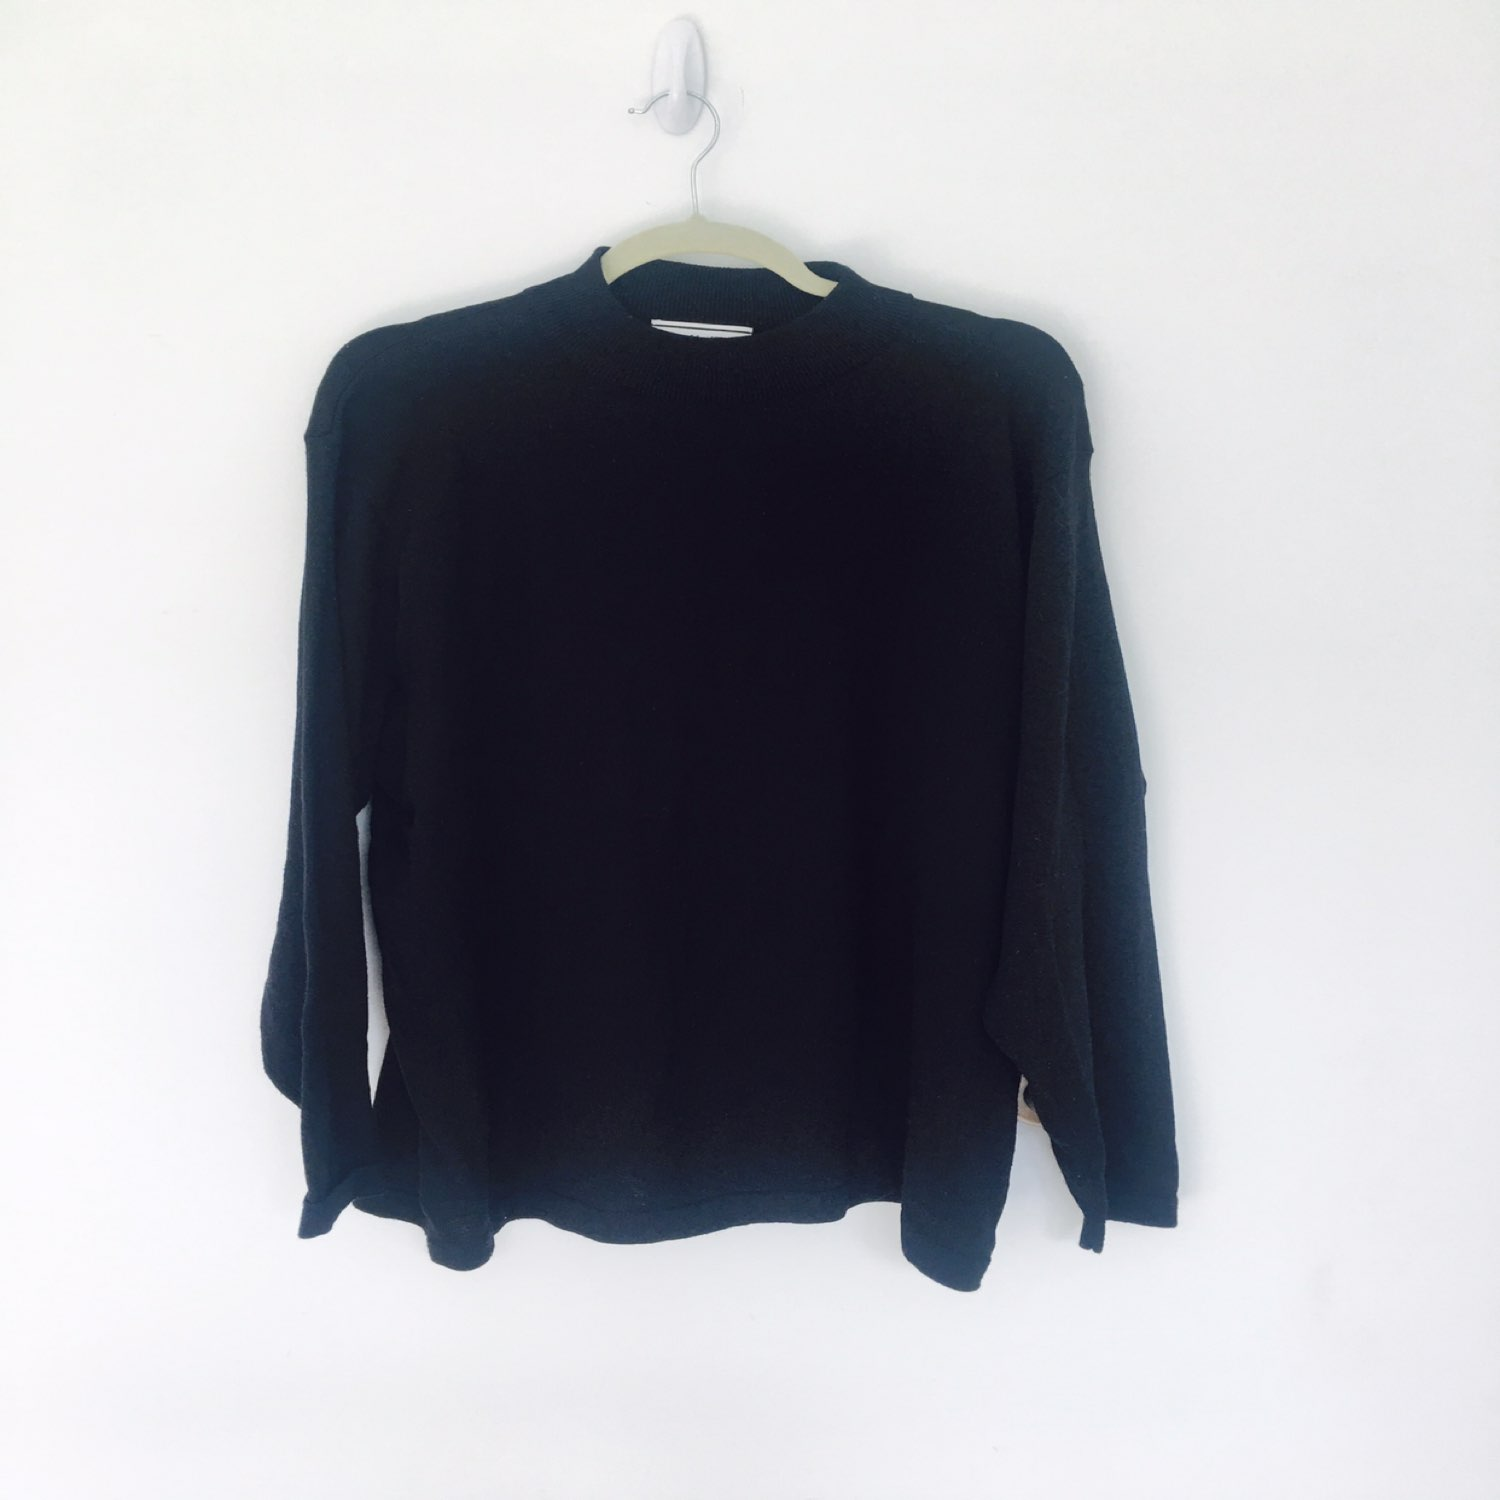 August Max solid black sweater - Mercari: BUY & SELL THINGS YOU LOVE